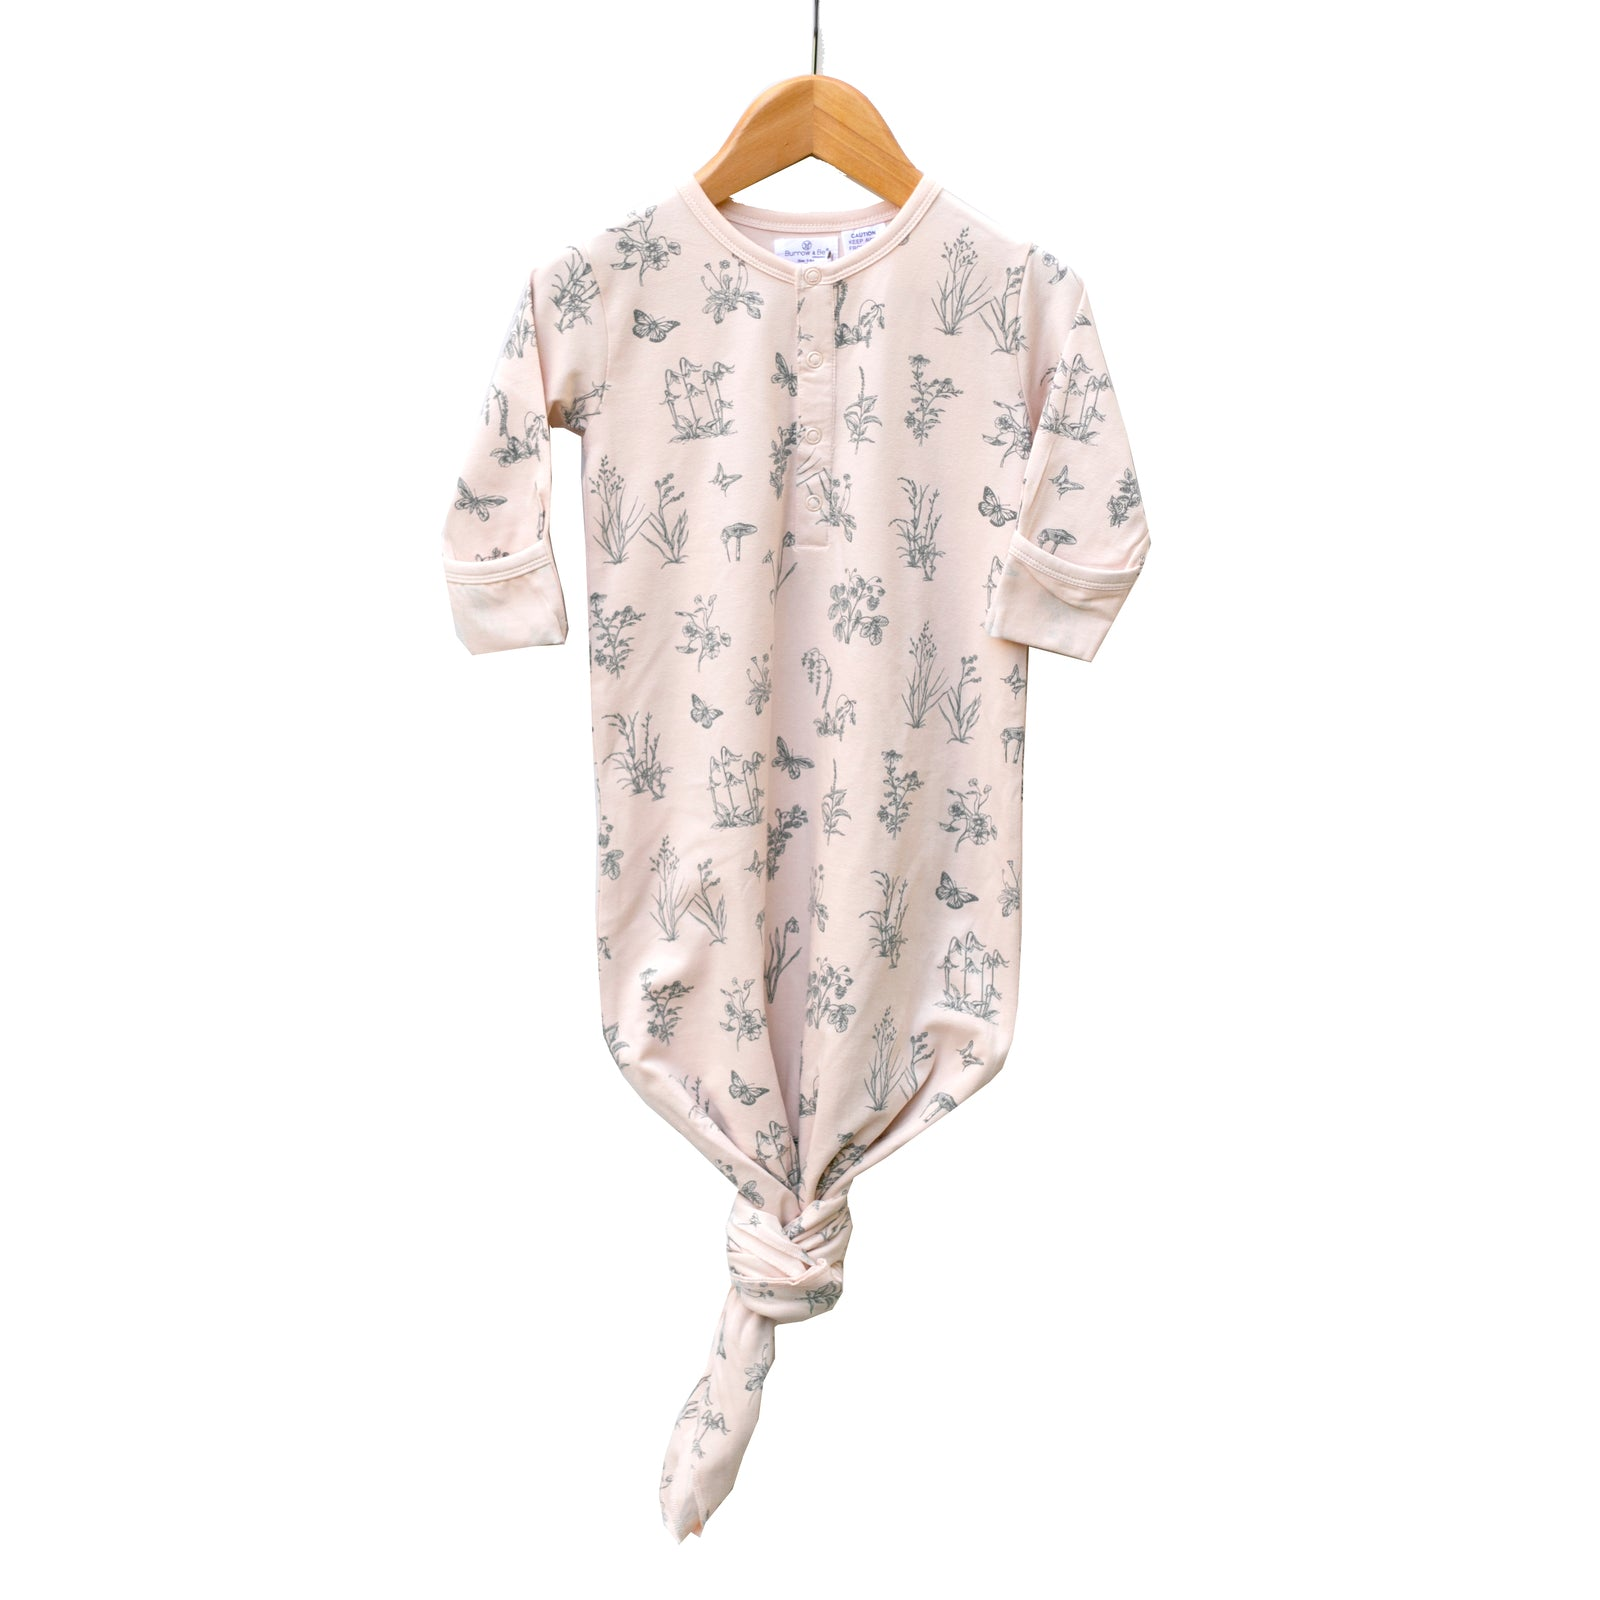 Burrow & Be Baby Sleep Gown - Blush Meadow Print (0-3 months)